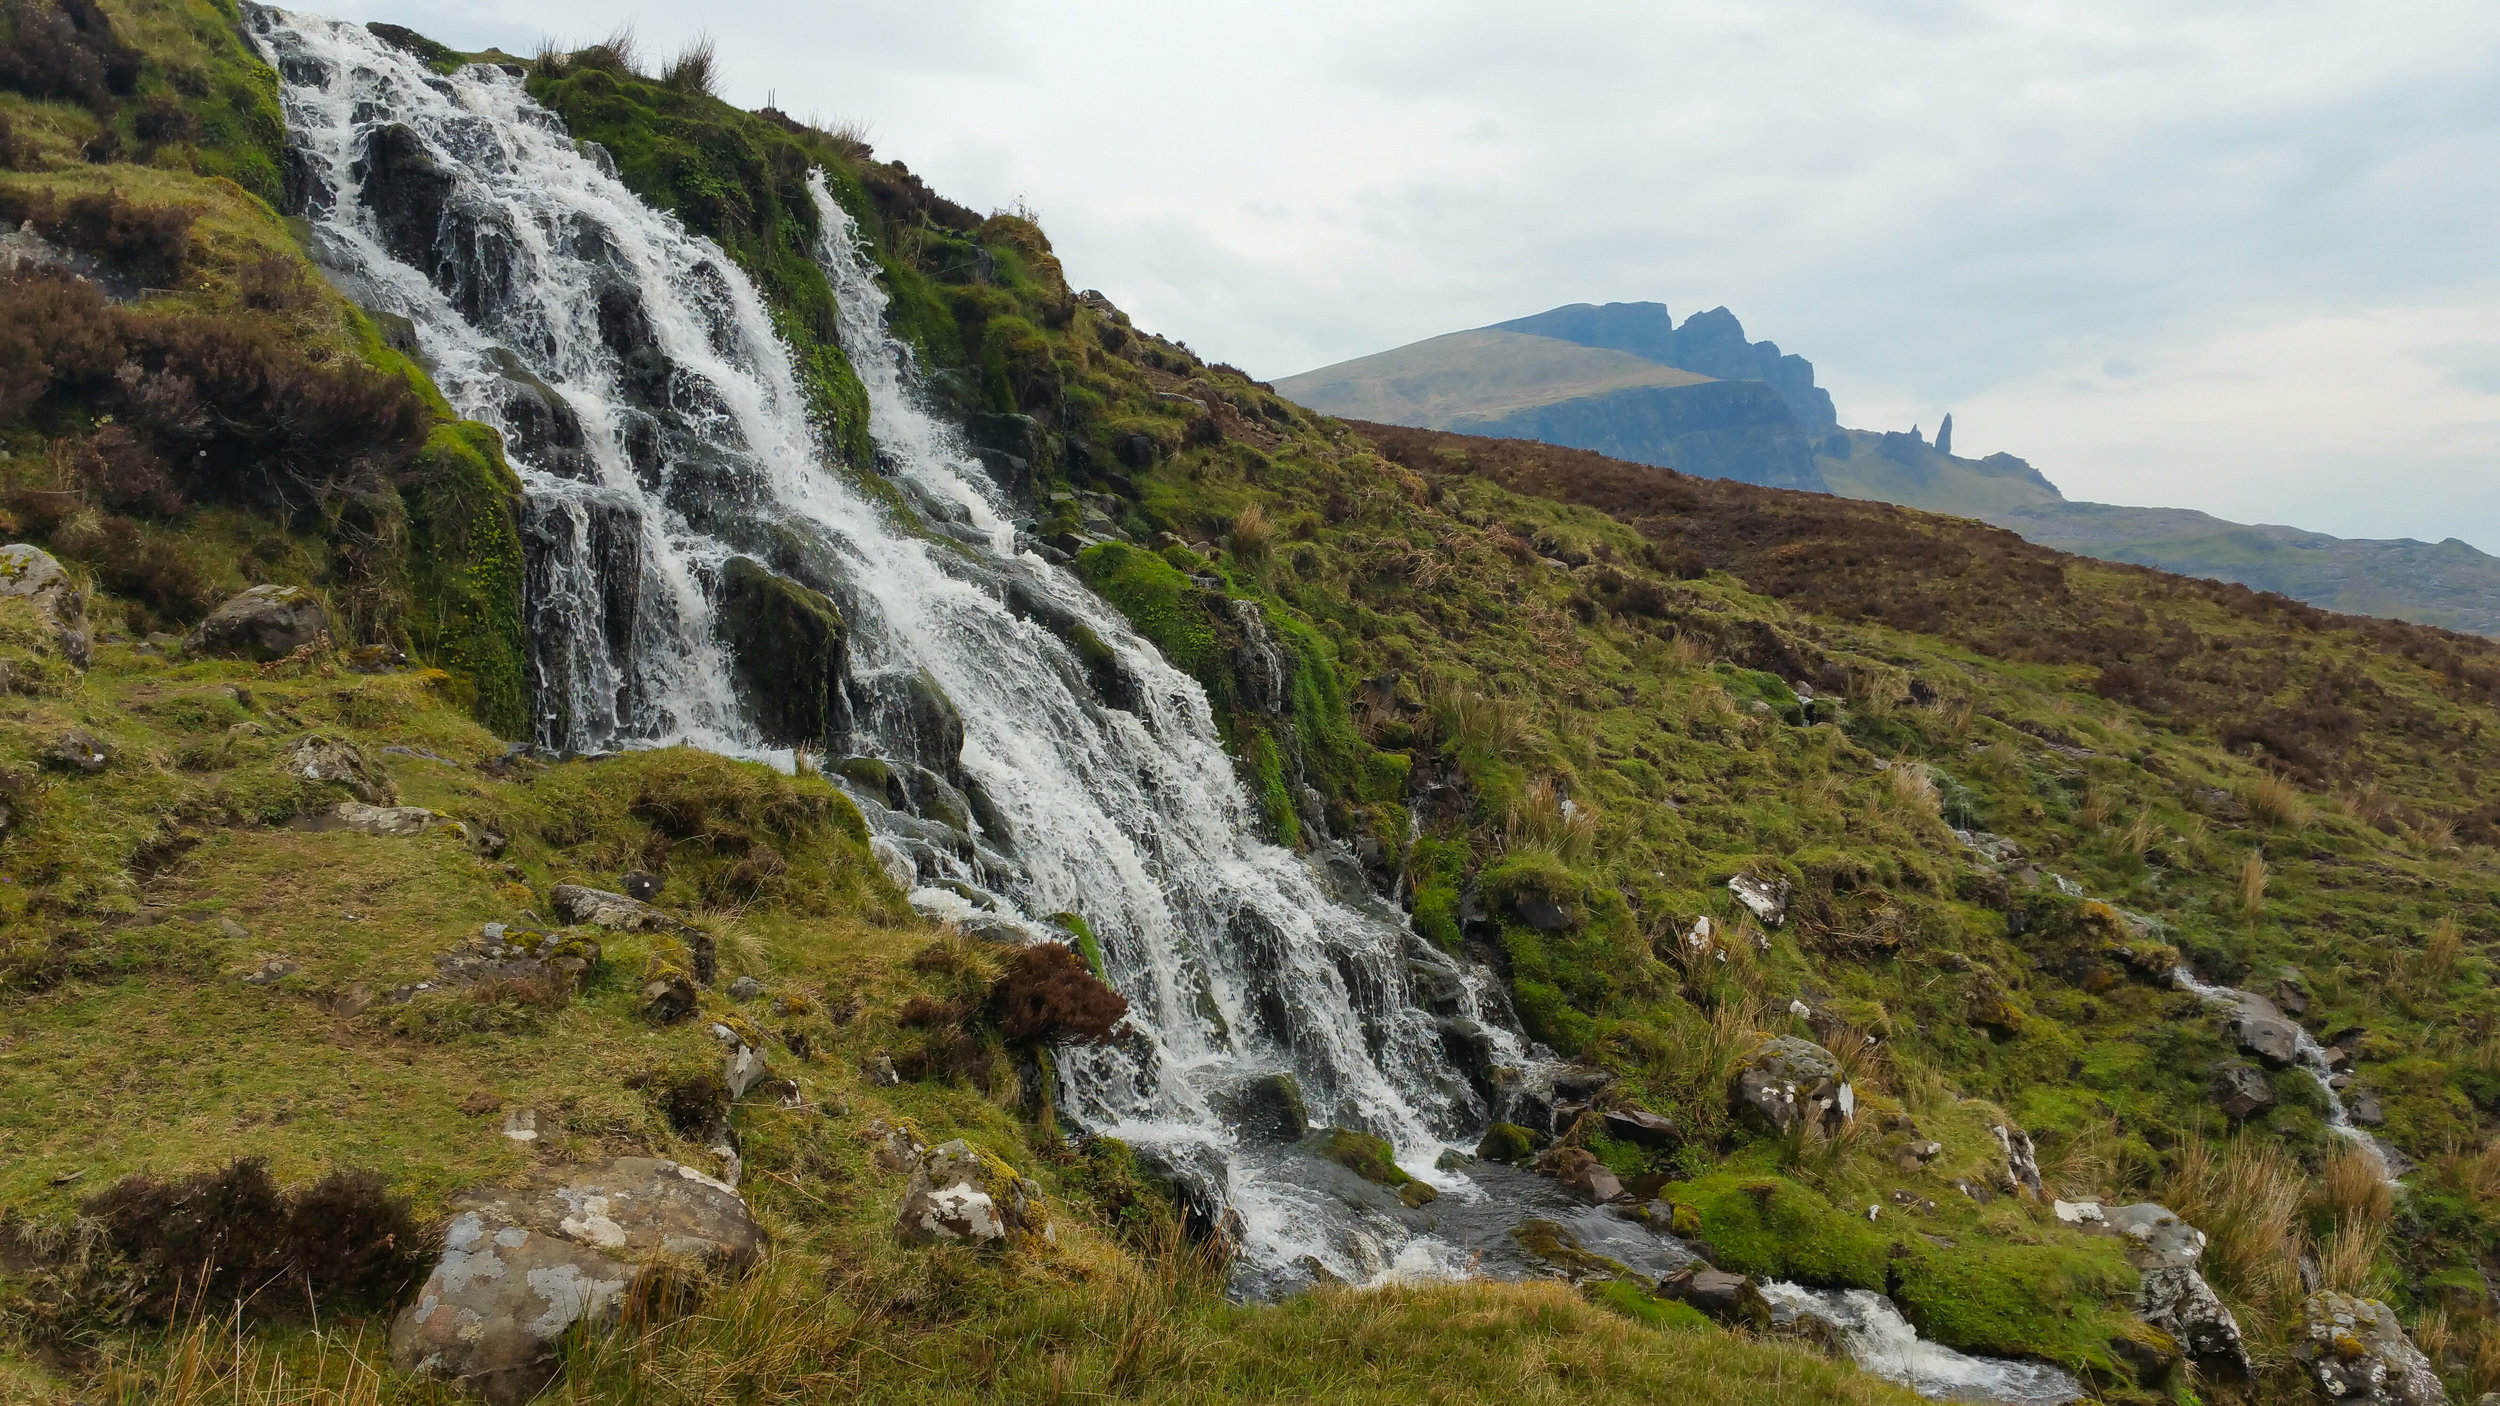 Chasing Autumn Photography - Medicine Hat Photography, Old Man of Storr, Scotland Photography, Isle of Skye